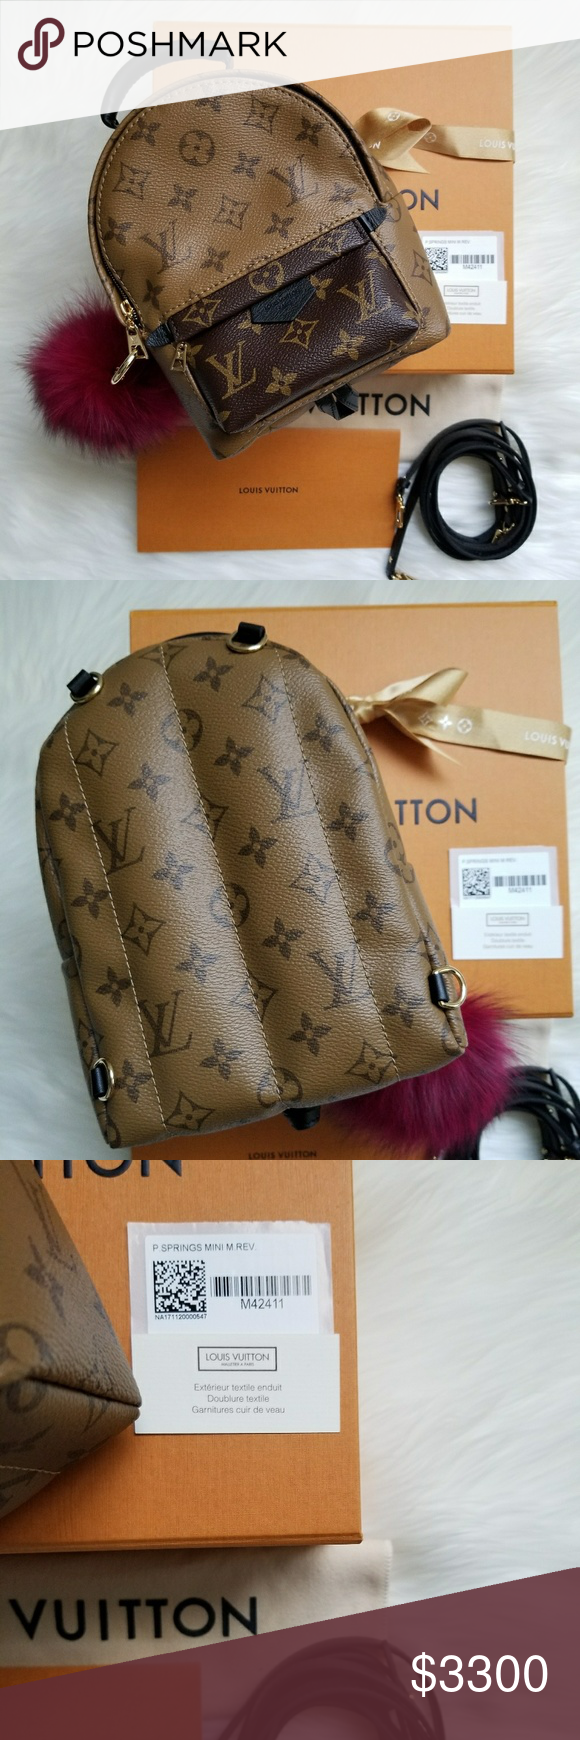 2e869877ef66 ❤NWT Louis Vuitton Palm Spring Mini Full Set❤ This lovely reverse monogram  backpack is